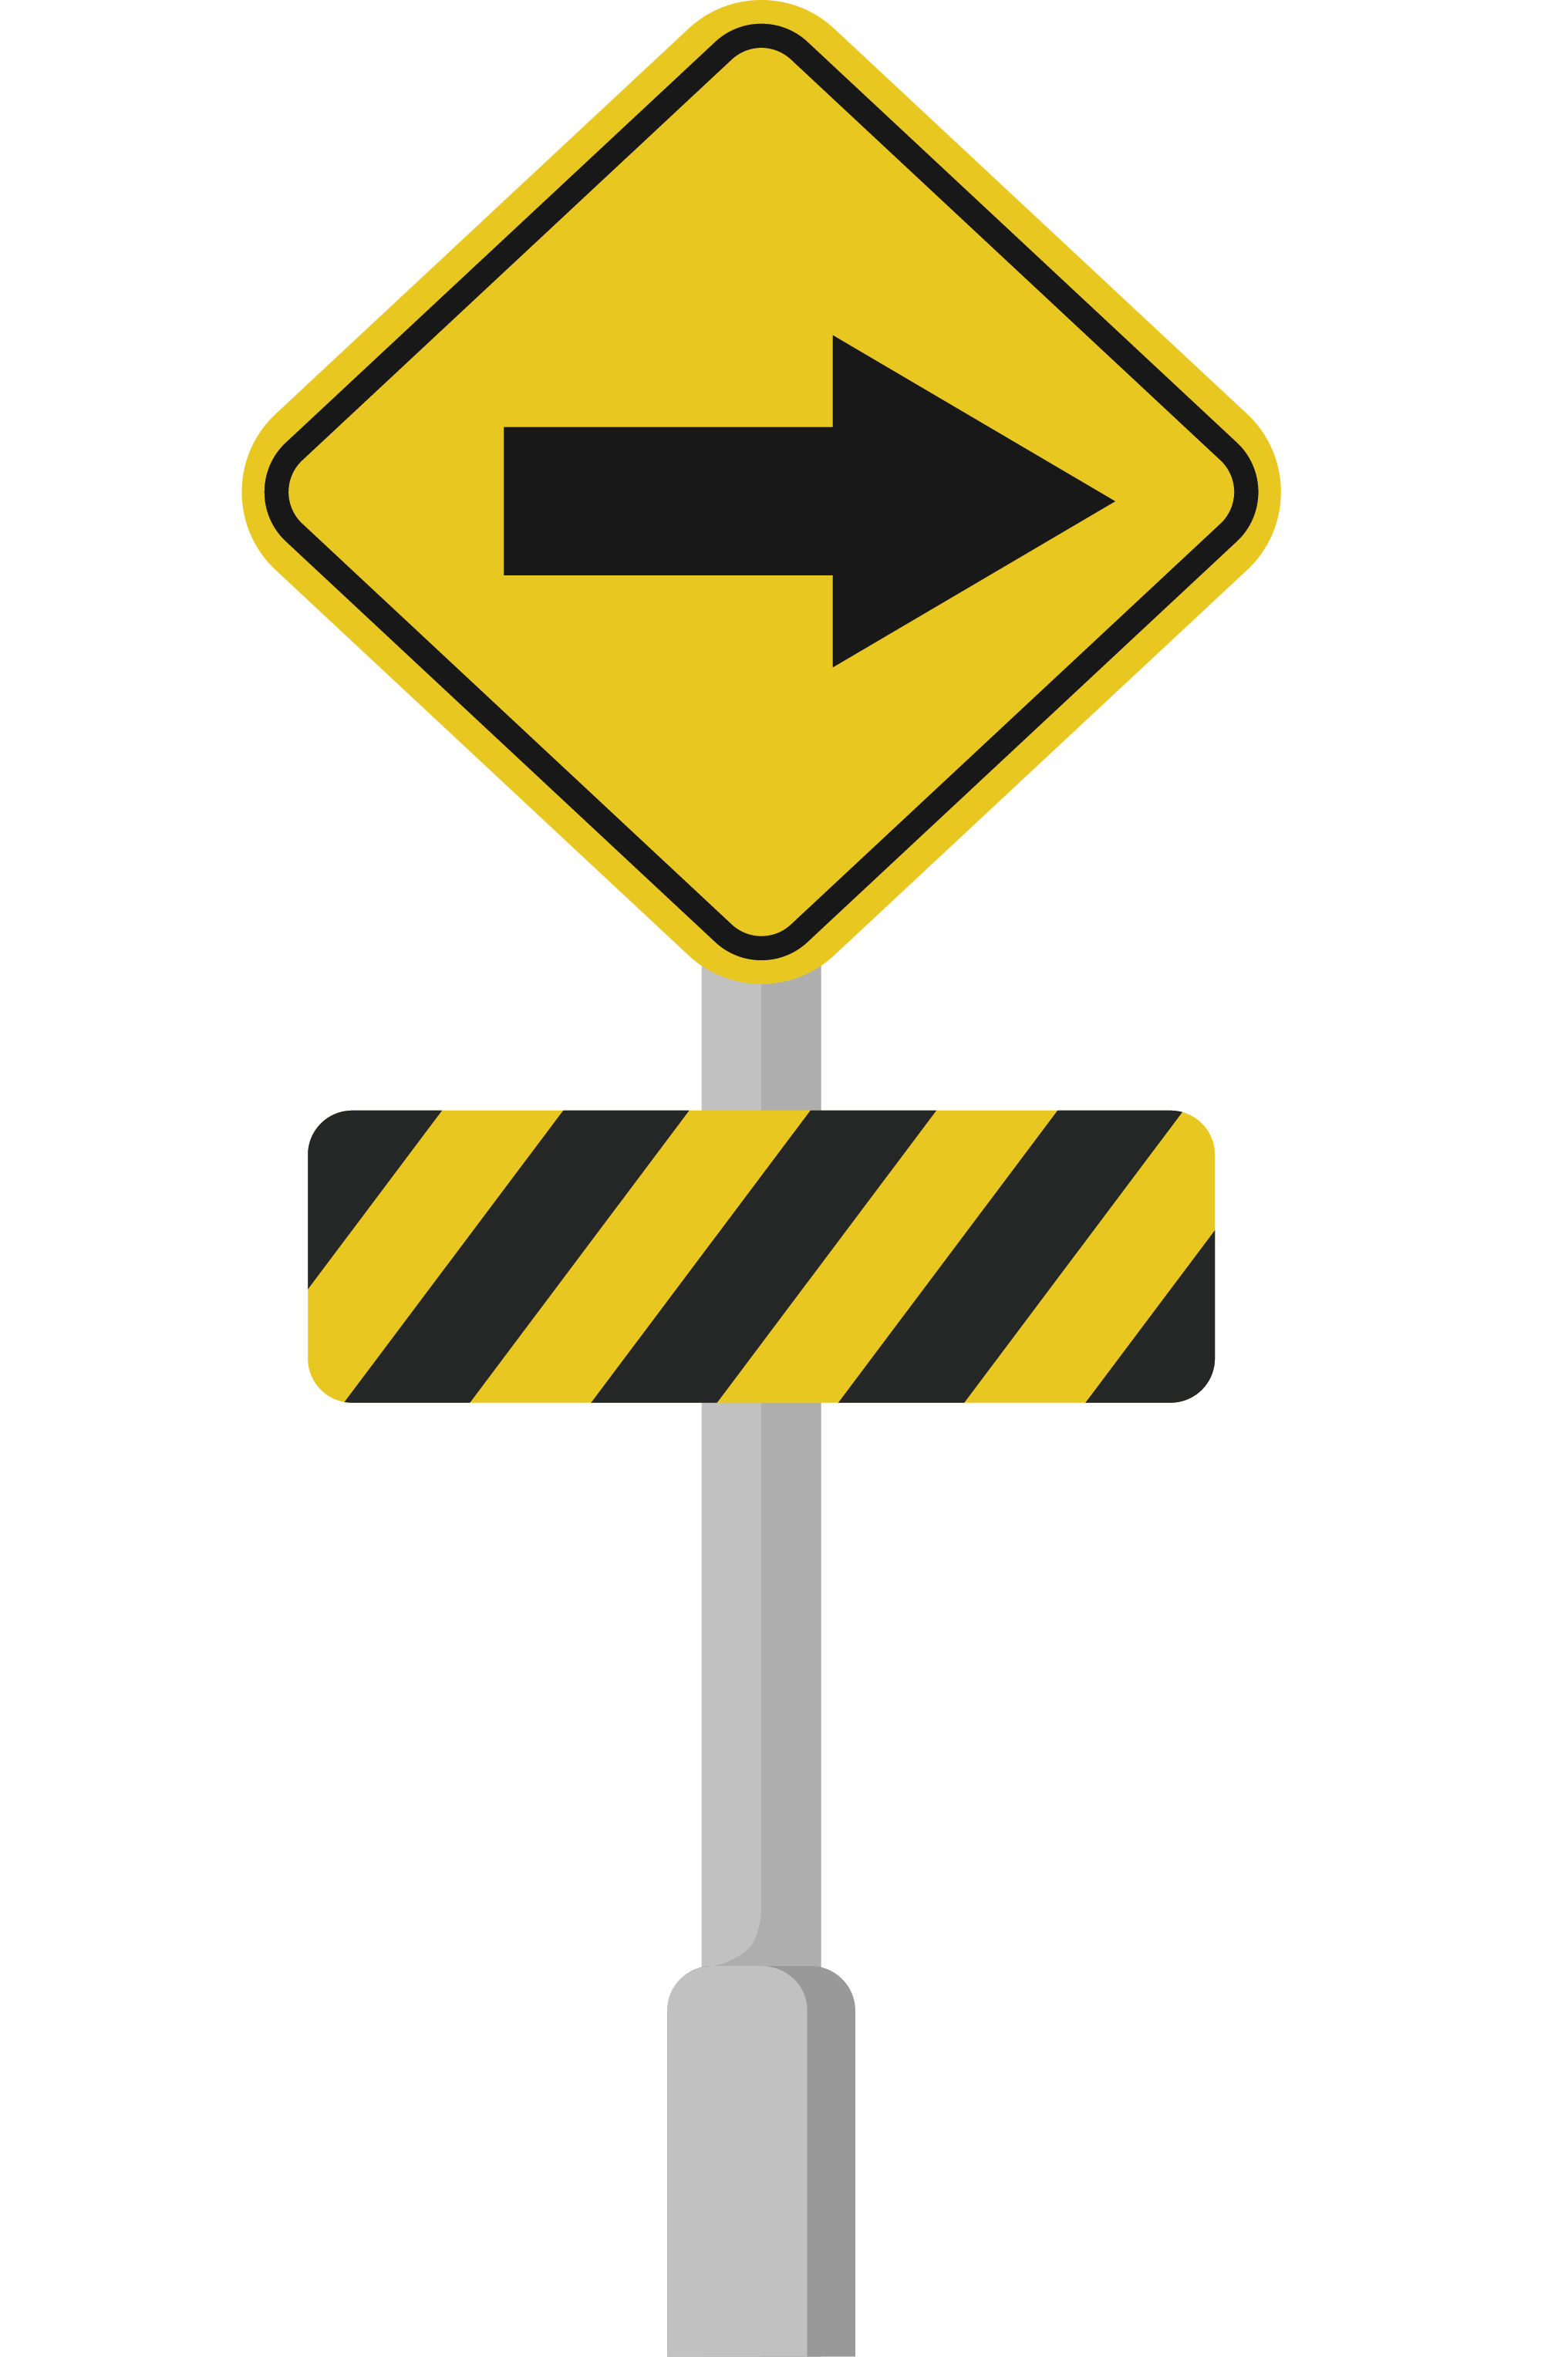 Traffic sign download right. Clipart road signboard